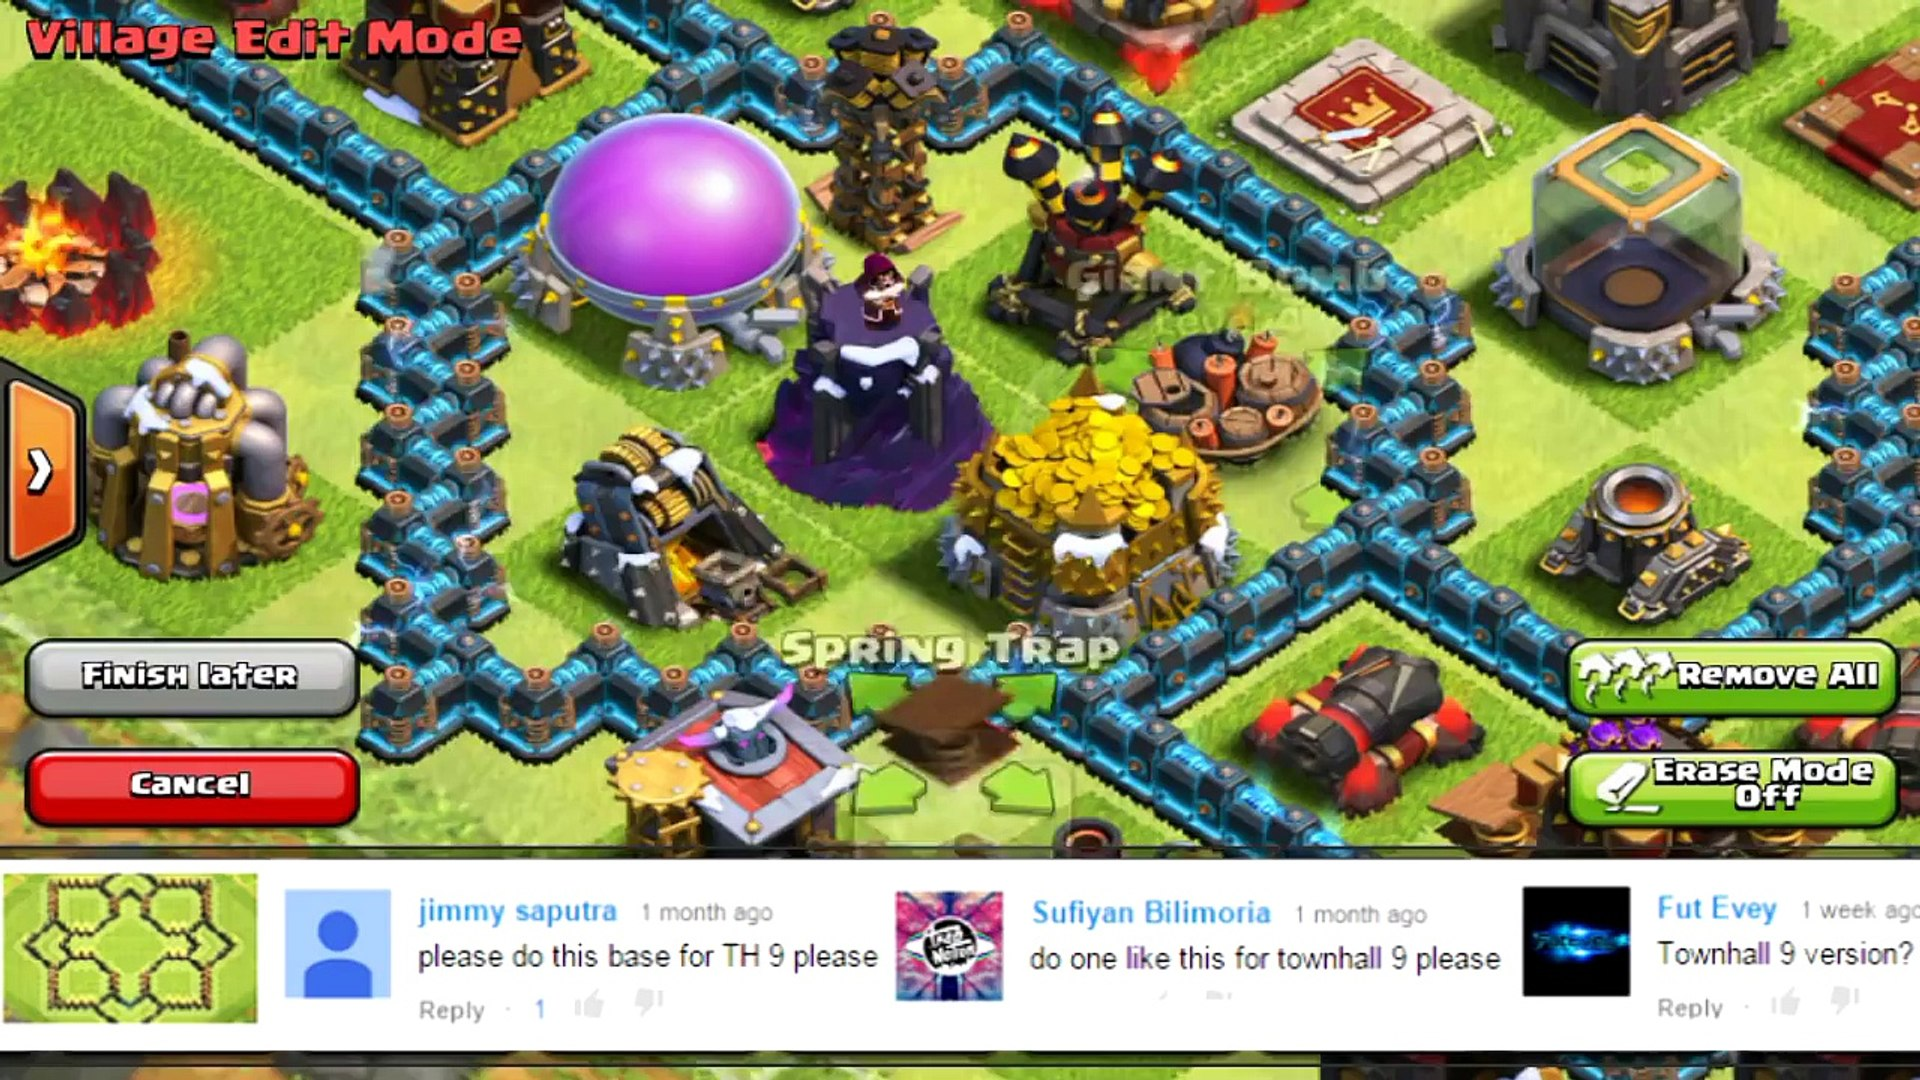 Clash of Clans - BEST Town Hall 9 Defense Trophy Base - NEW Speedbuild 2015  With Defensive Replay! - video dailymotion